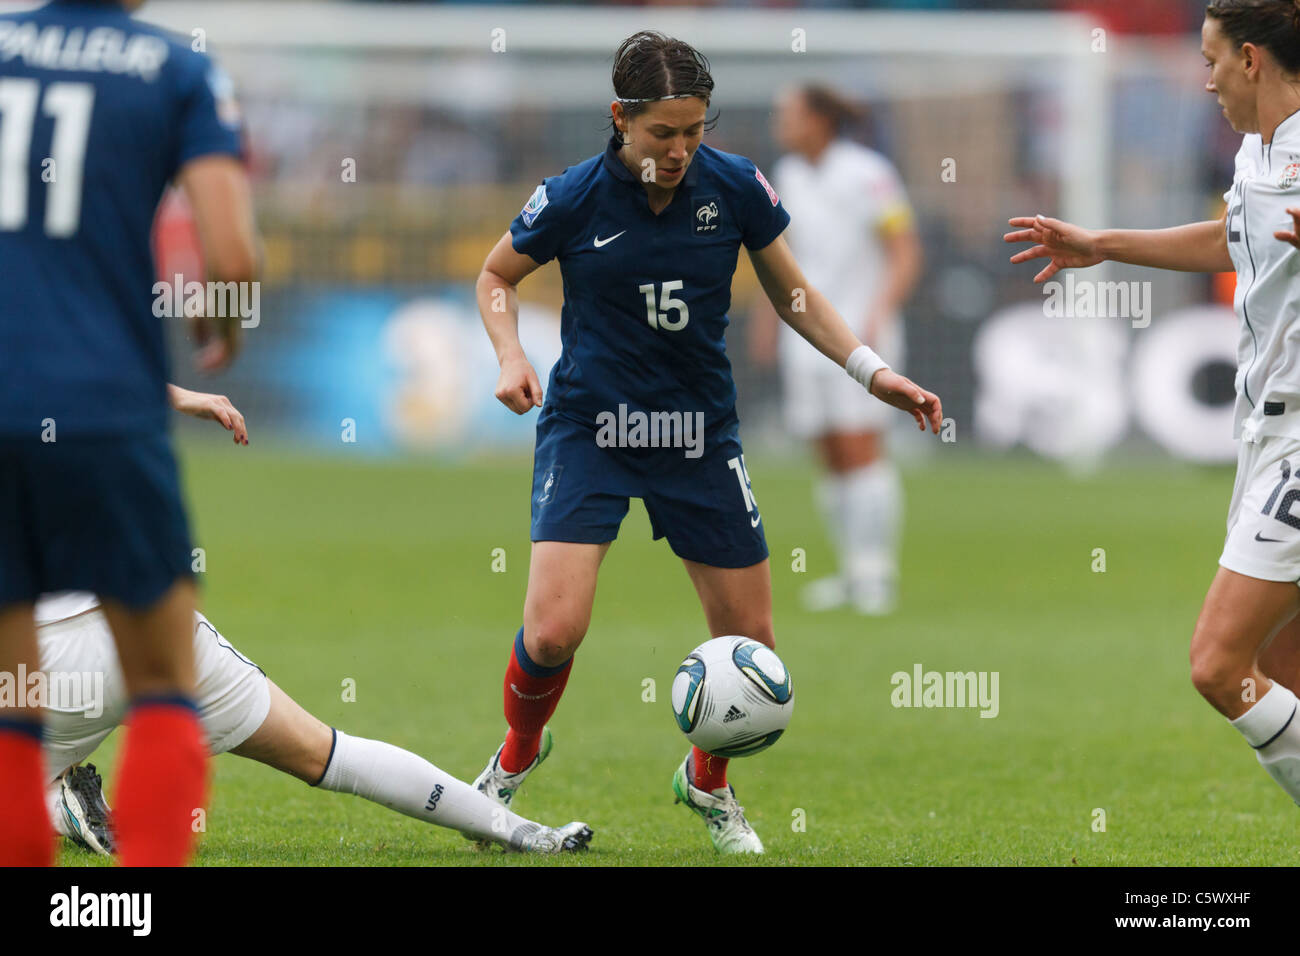 Elise Bussaglia of France (15) in action during a FIFA Women's World Cup semifinal match against the United - Stock Image